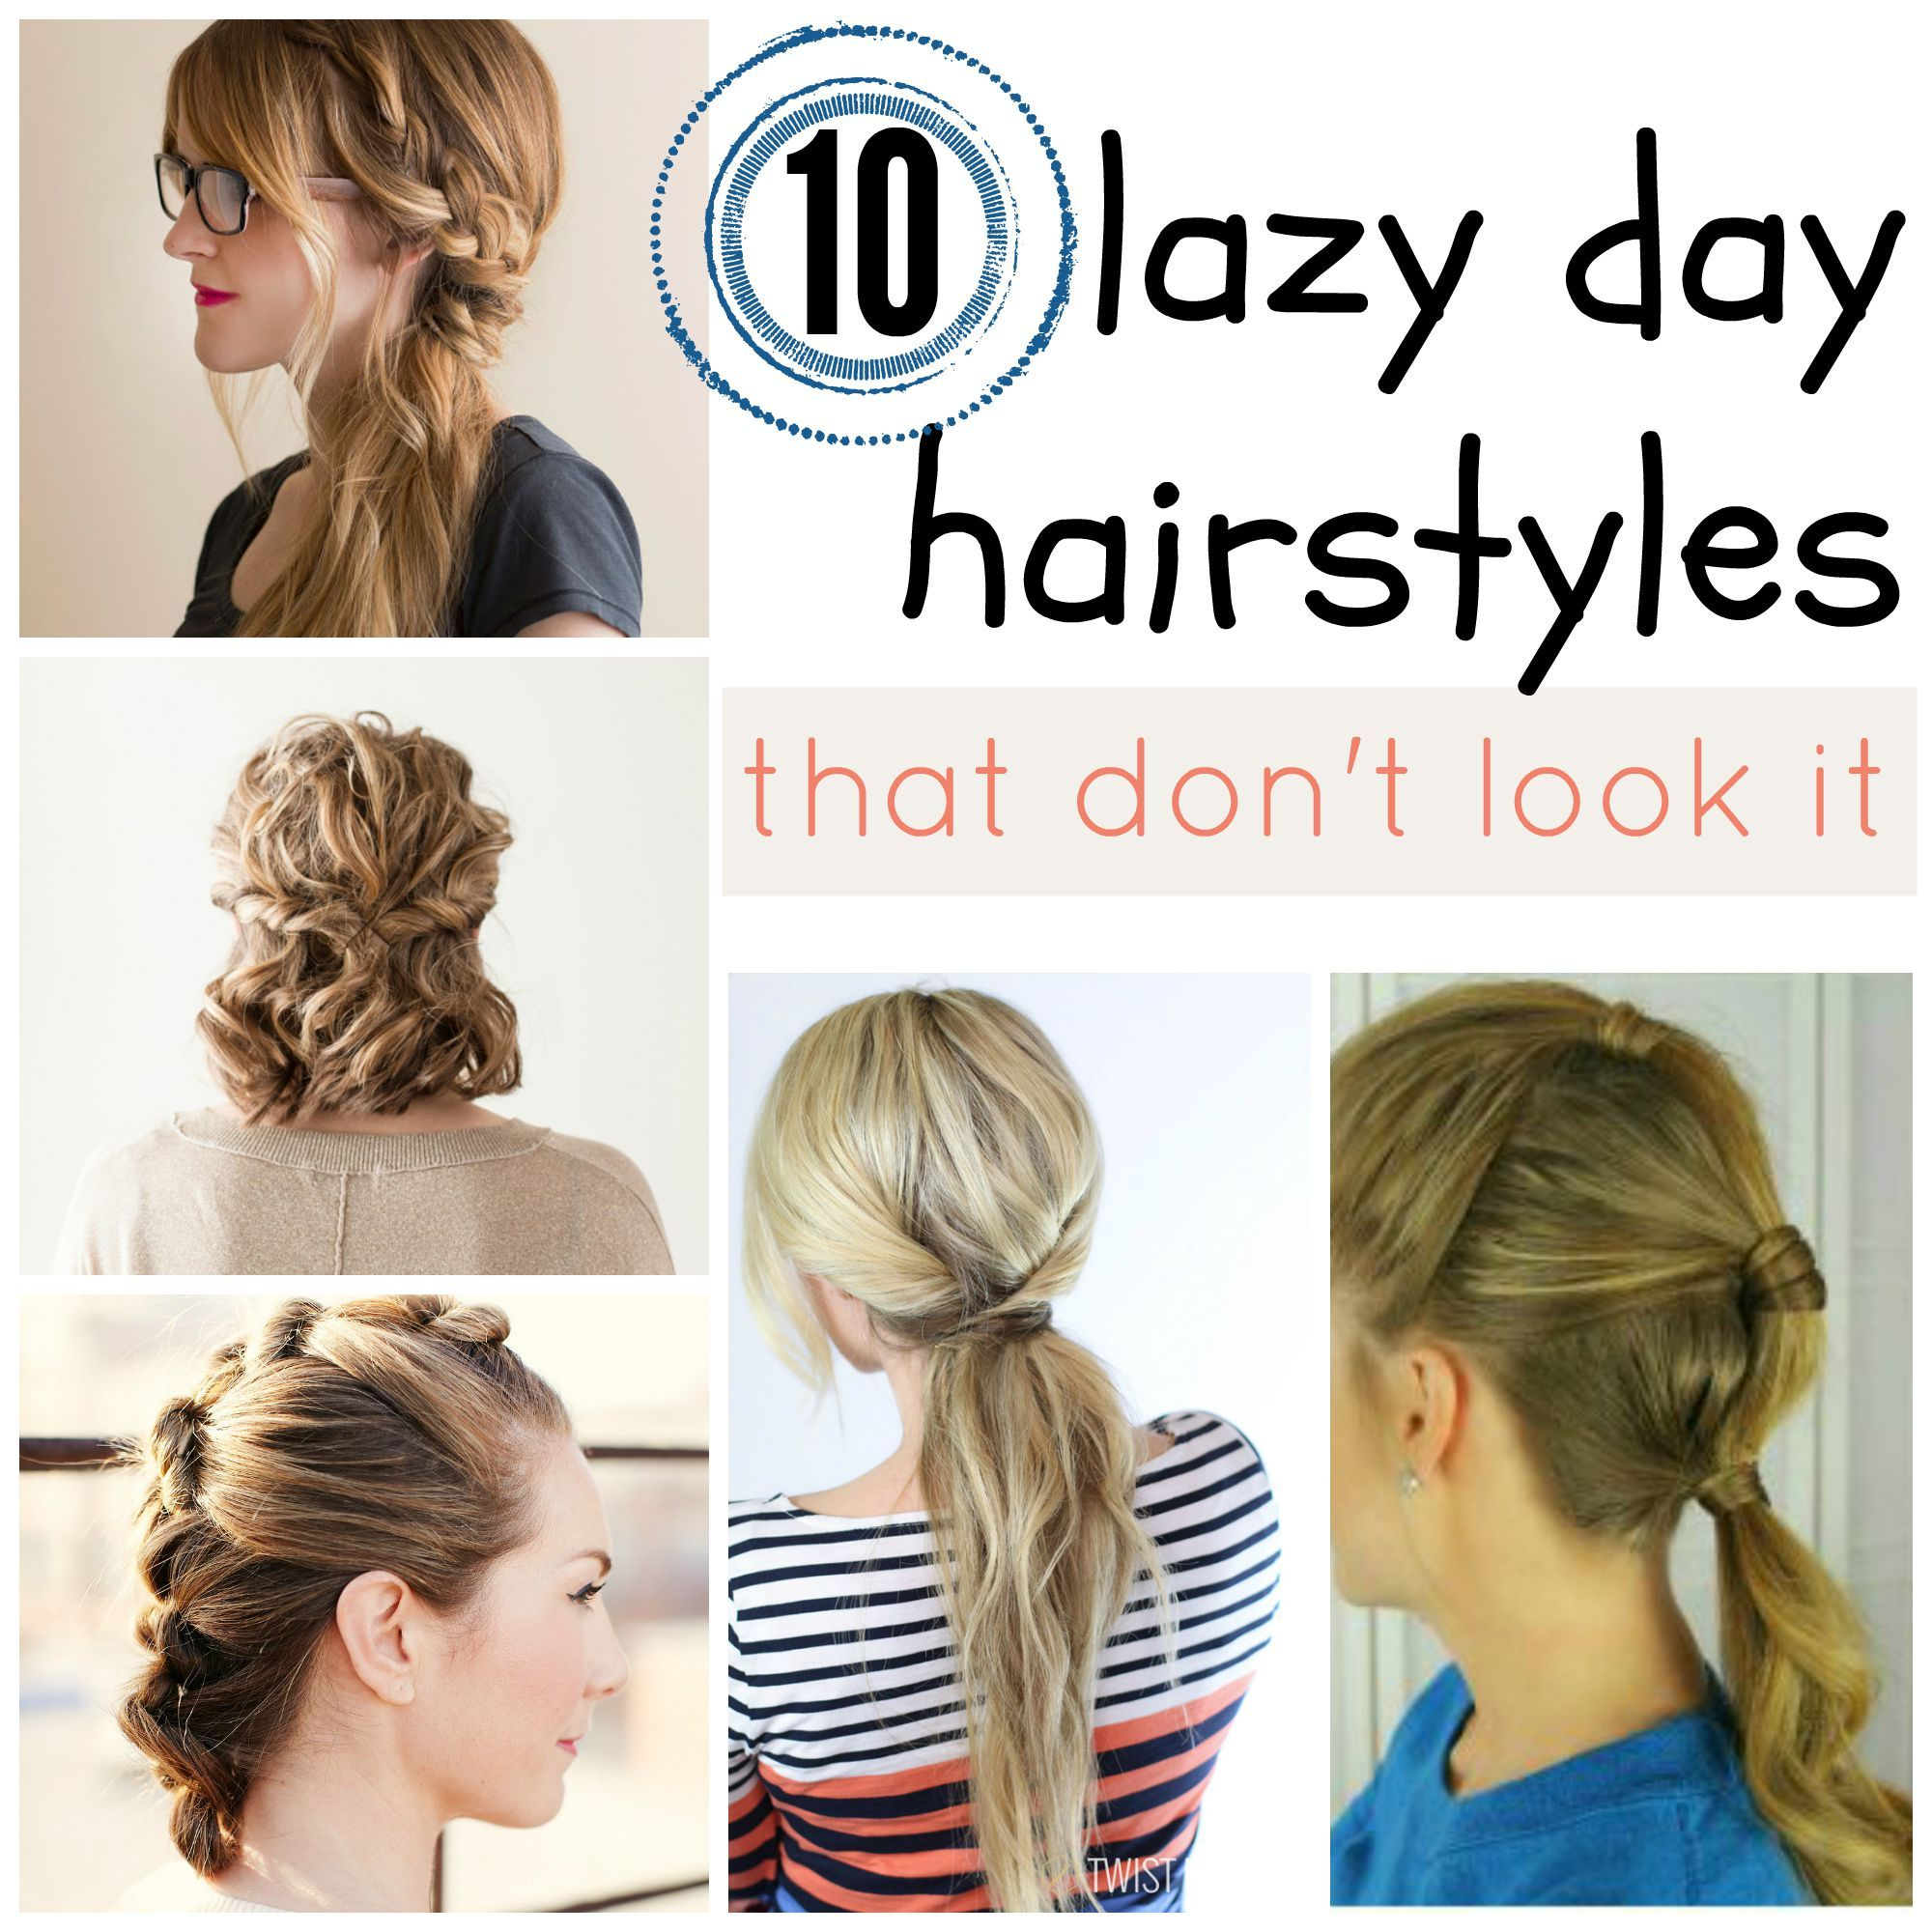 10 Lazy Day Hairstyles That Don T Look It Tipsaholic Lazy Day Hairstyles How To Curl Your Hair Lazy Hairstyles